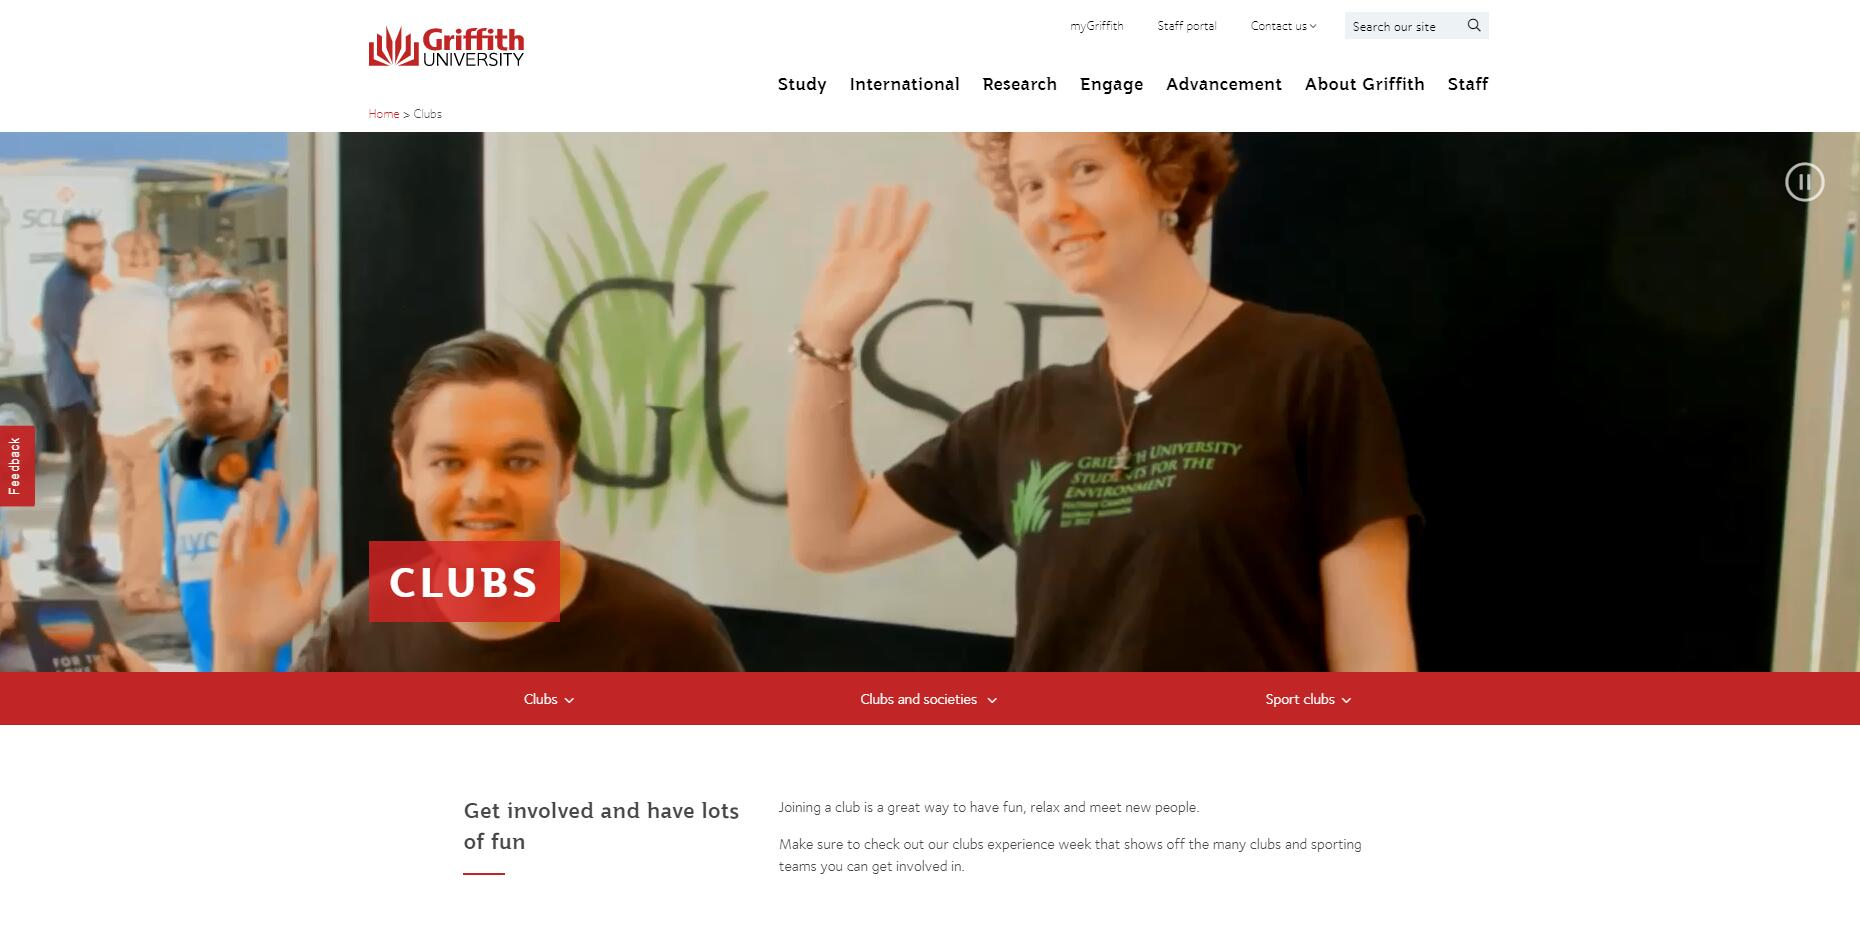 Clubs - Griffith University